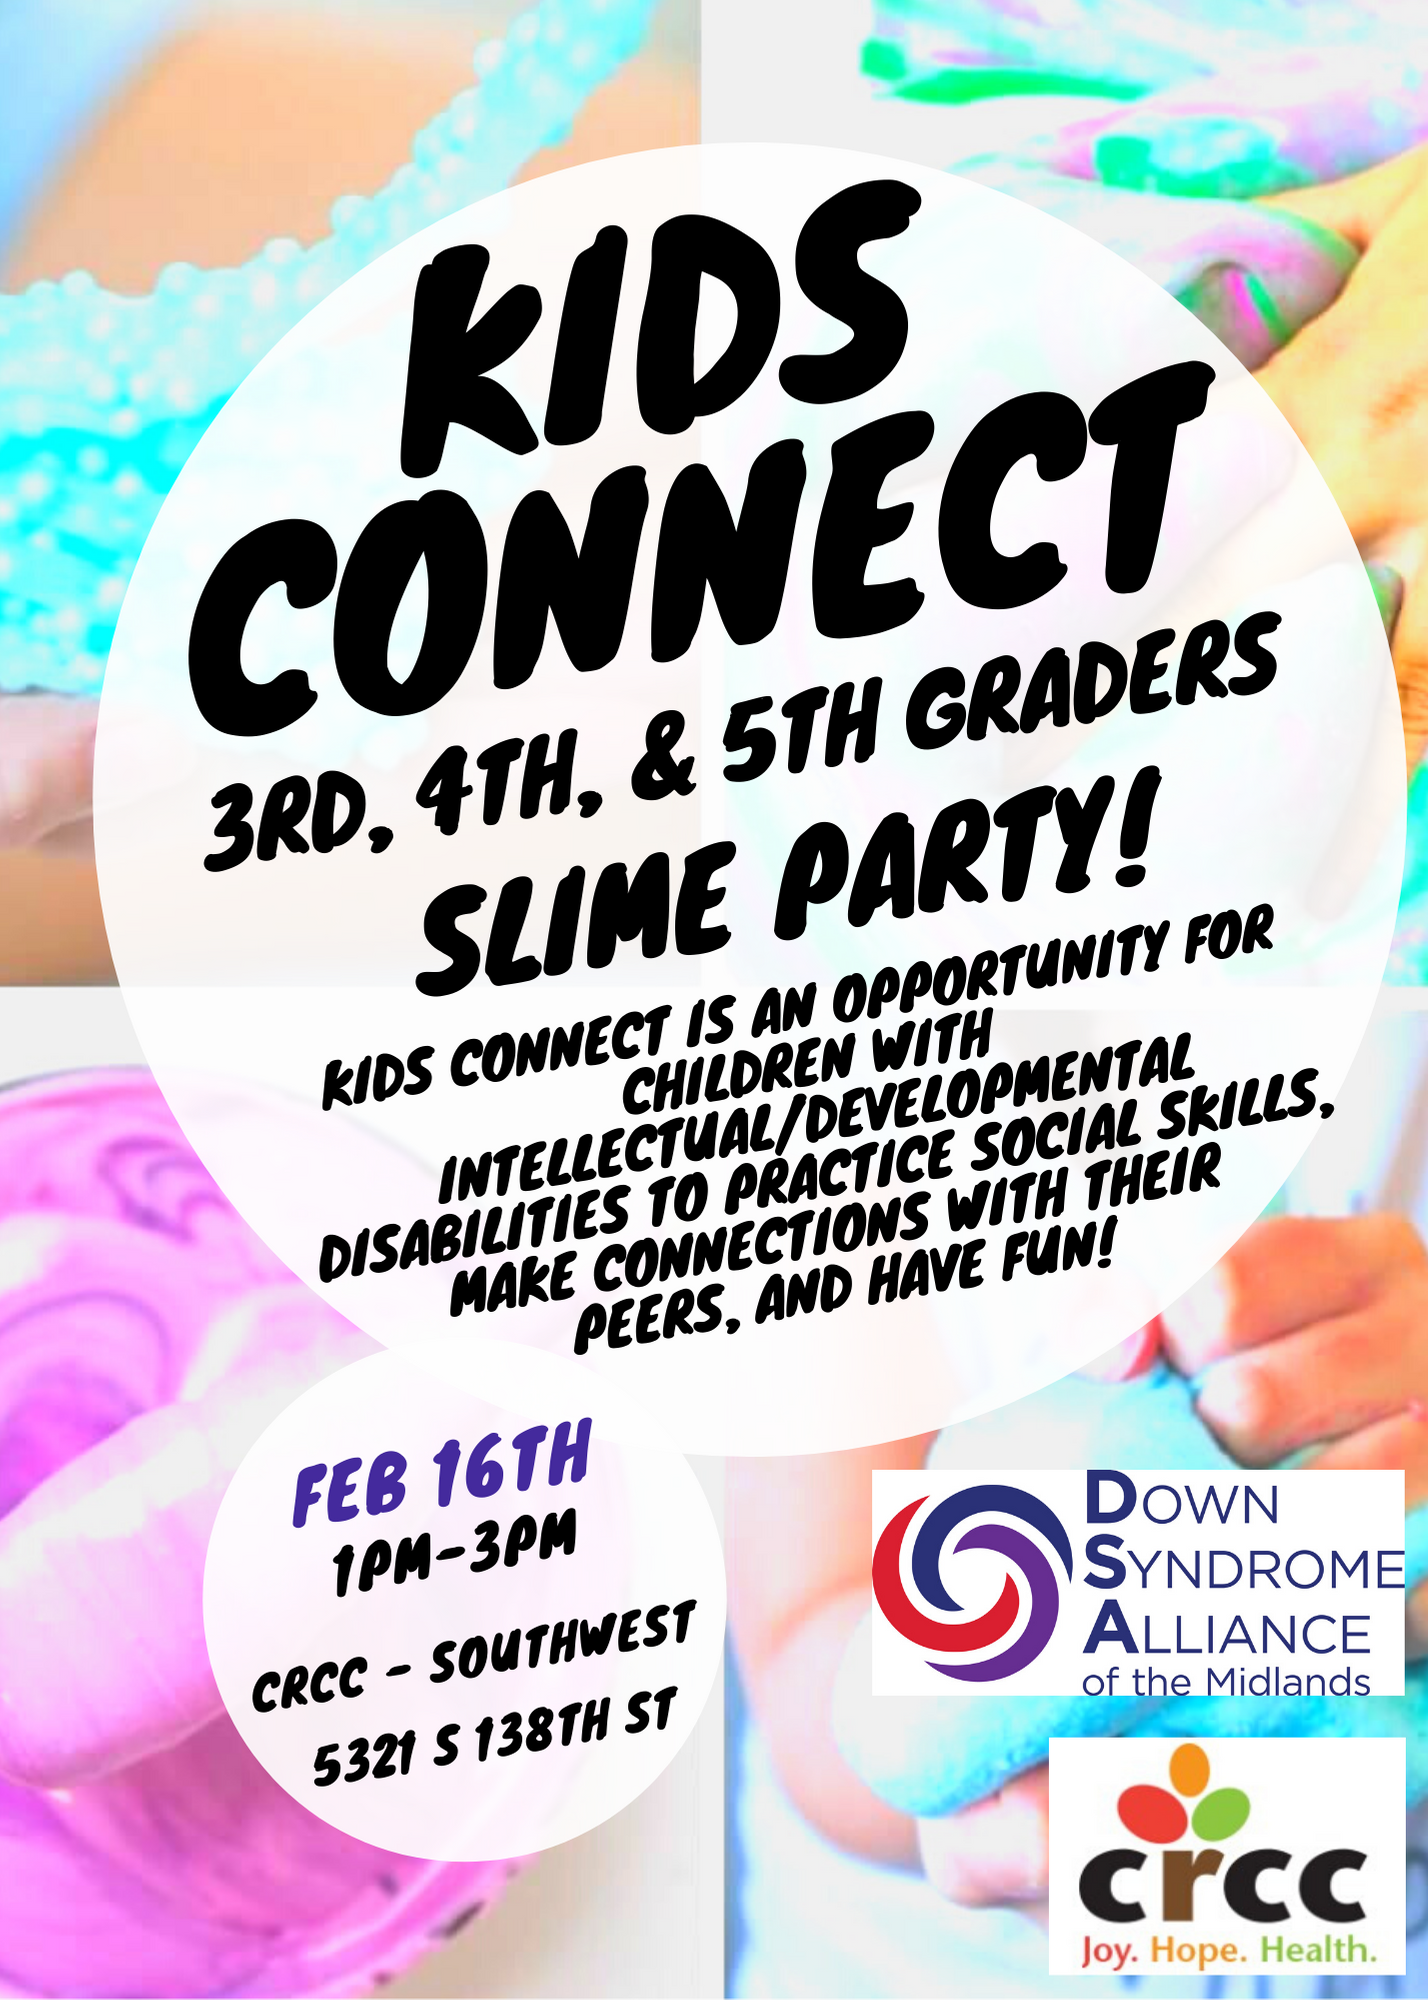 Kids Connect Slime Party! 3rd, 4th, and 5th grade